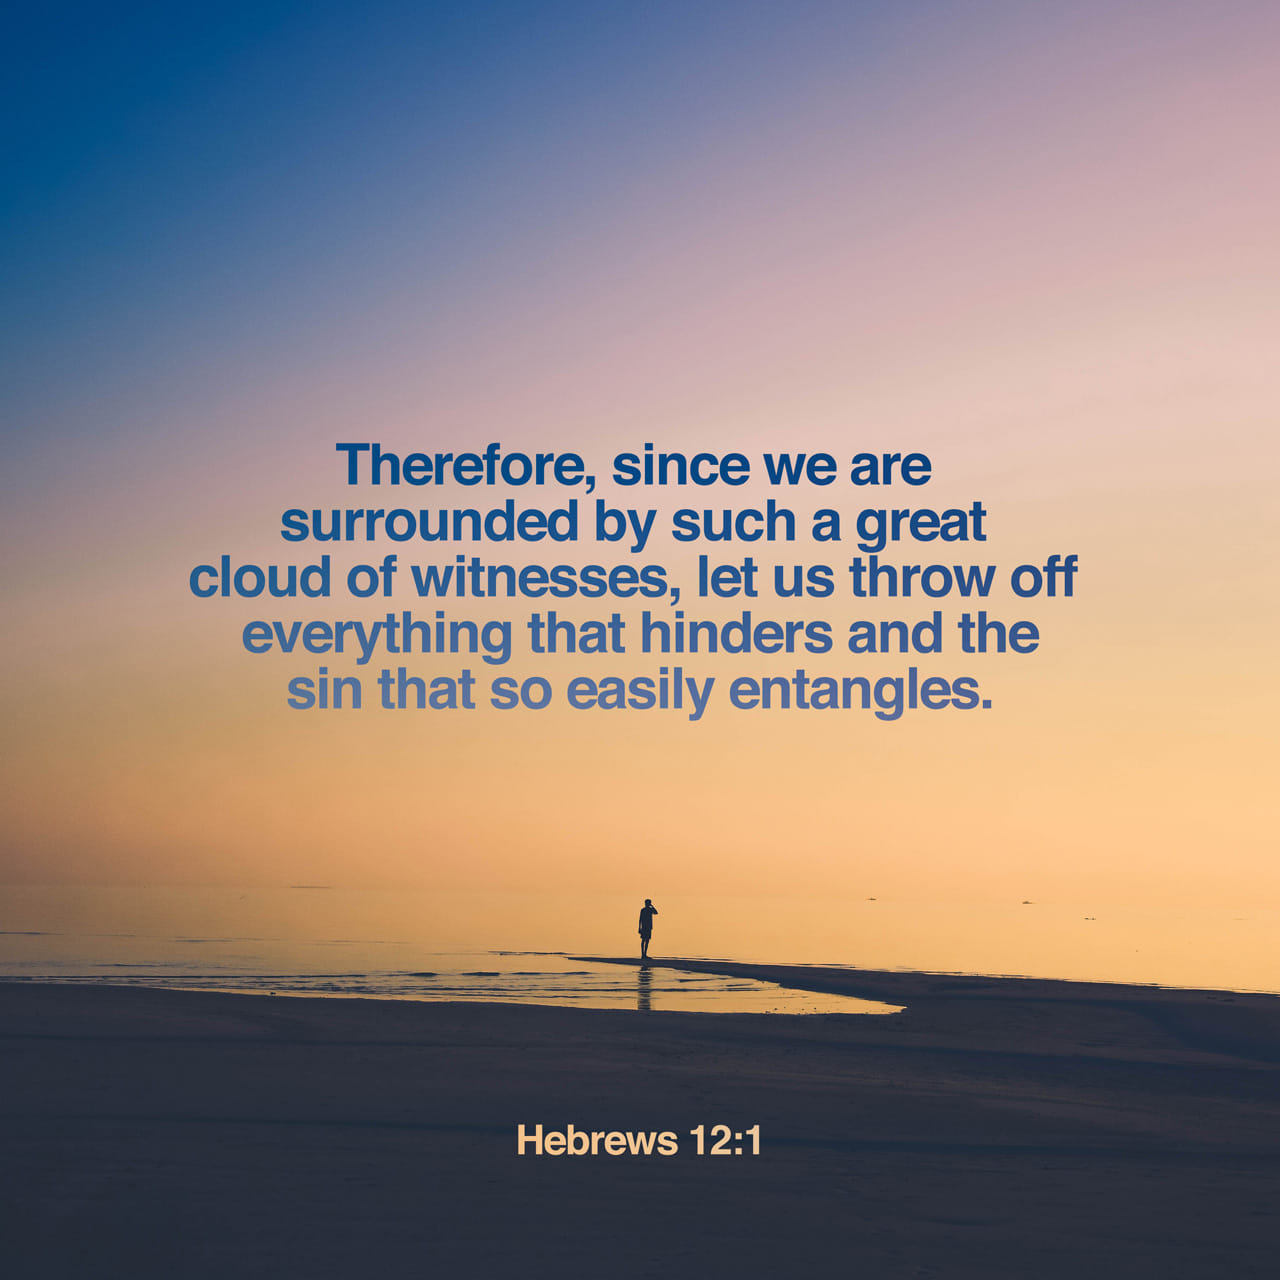 Hebrews 12:1 Wherefore seeing we also are compassed about with so great a cloud of witnesses, let us lay aside every weight, and the sin which doth so easily beset us, and let us run with patience the race that is | King James Version (KJV)